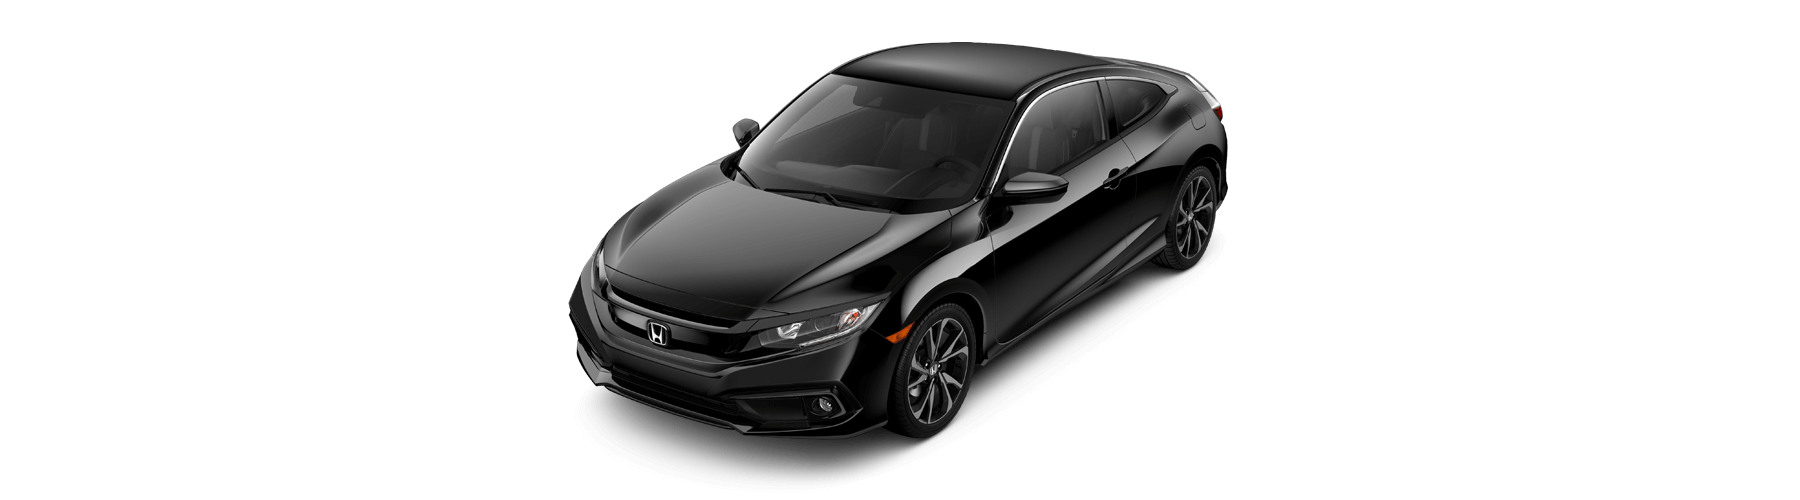 2019 Honda Civic Coupe Front Angle